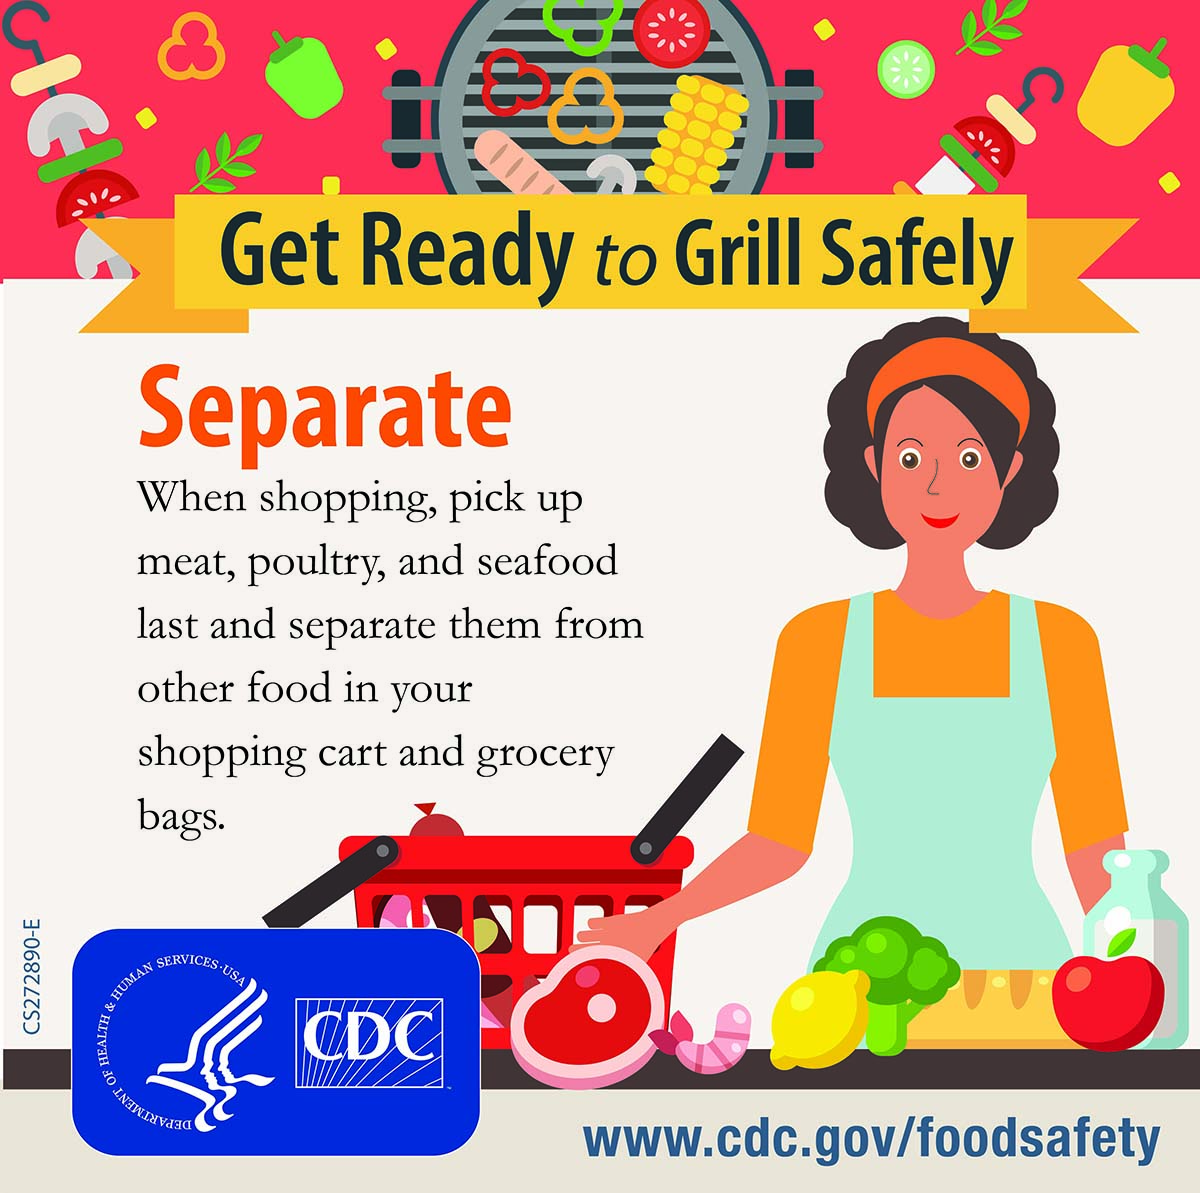 cdc and food safety Fda, along with the us centers for disease control and prevention (cdc), provides information on food safety and disposal during public health emergencies, such as floods, hurricanes.